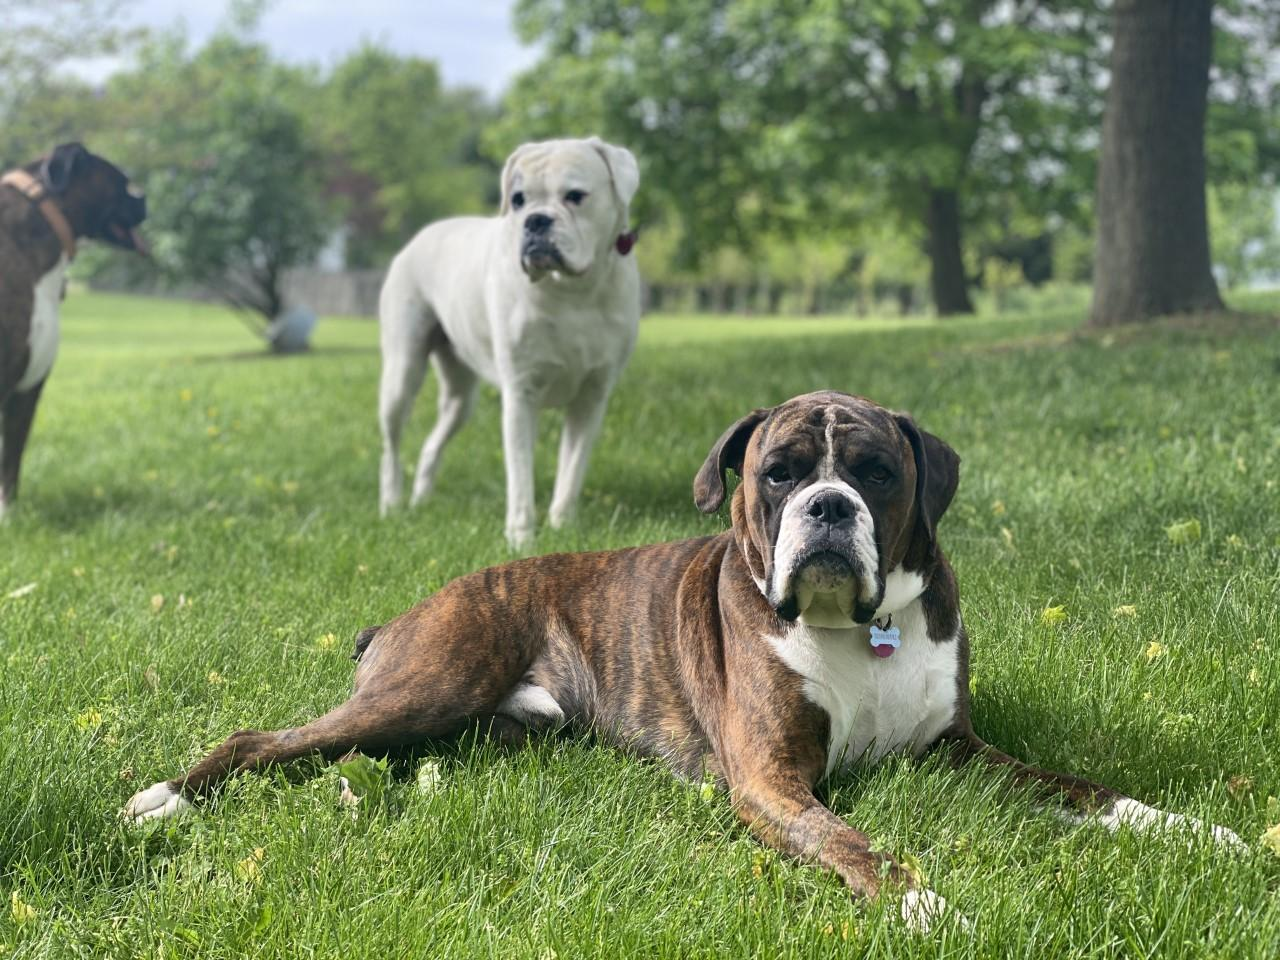 A group of dogs in a grassy field  Description automatically generated with low confidence